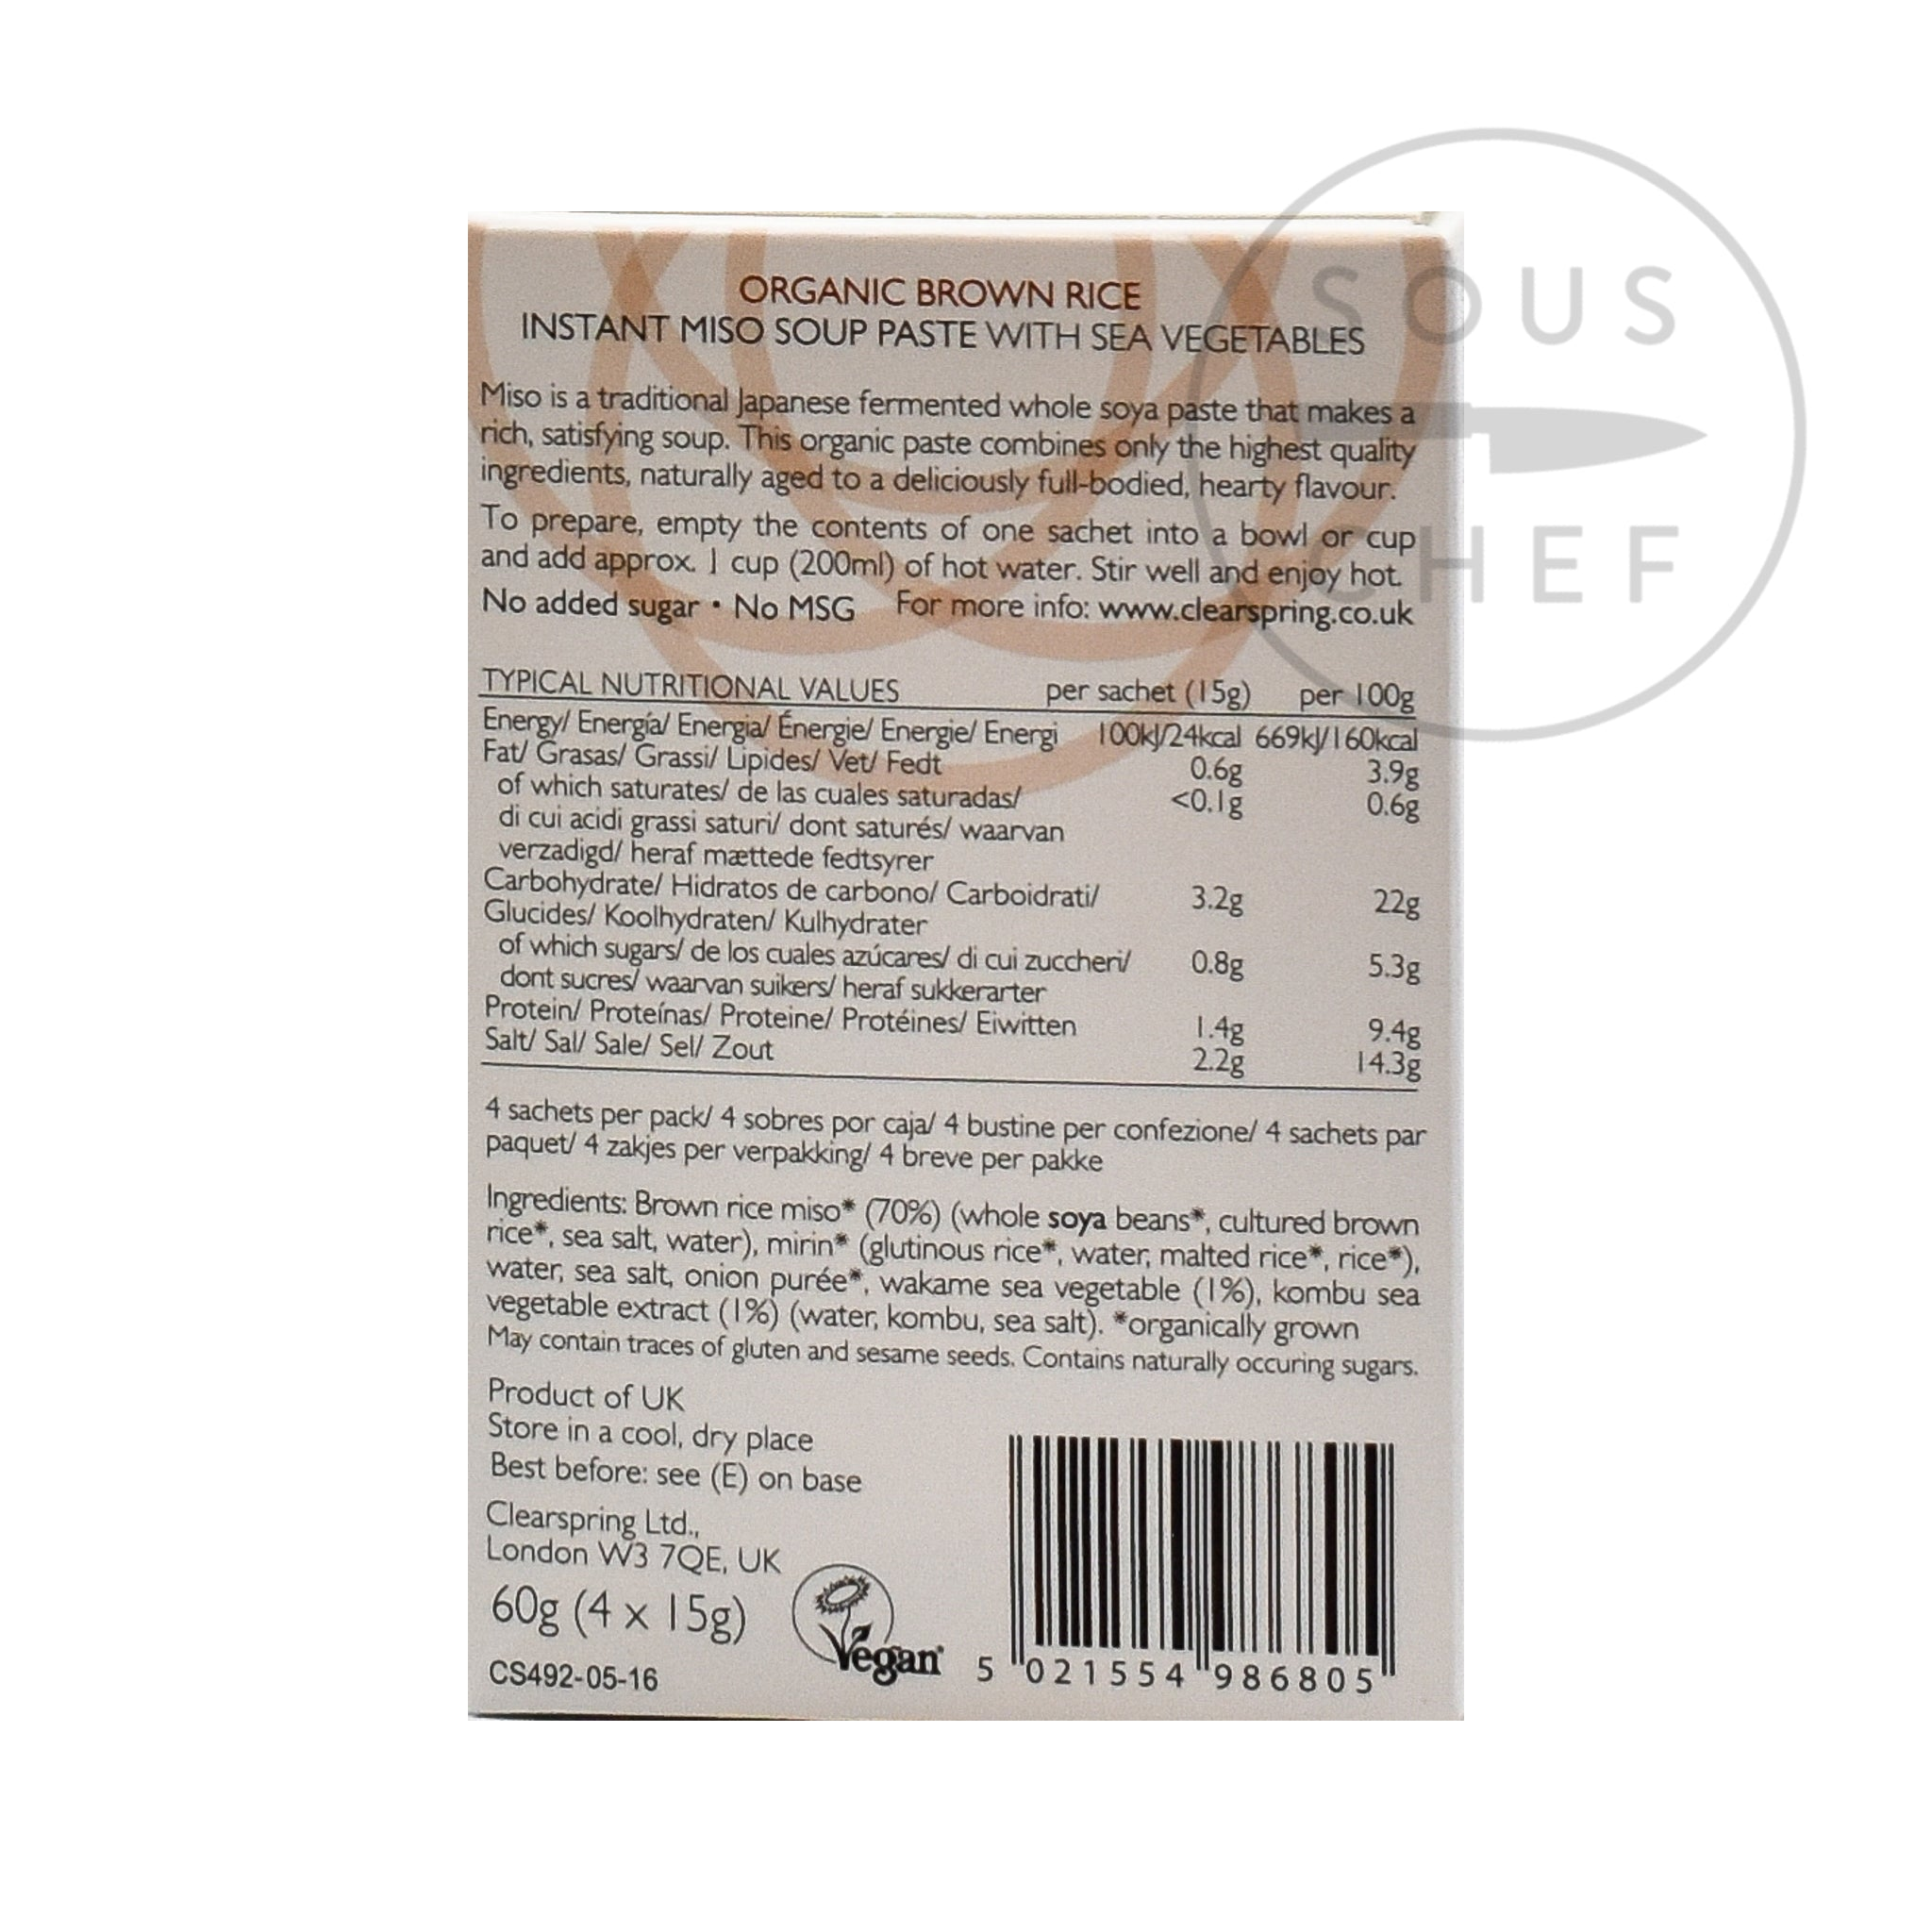 Clearspring Organic Instant Miso Soup Paste 15g